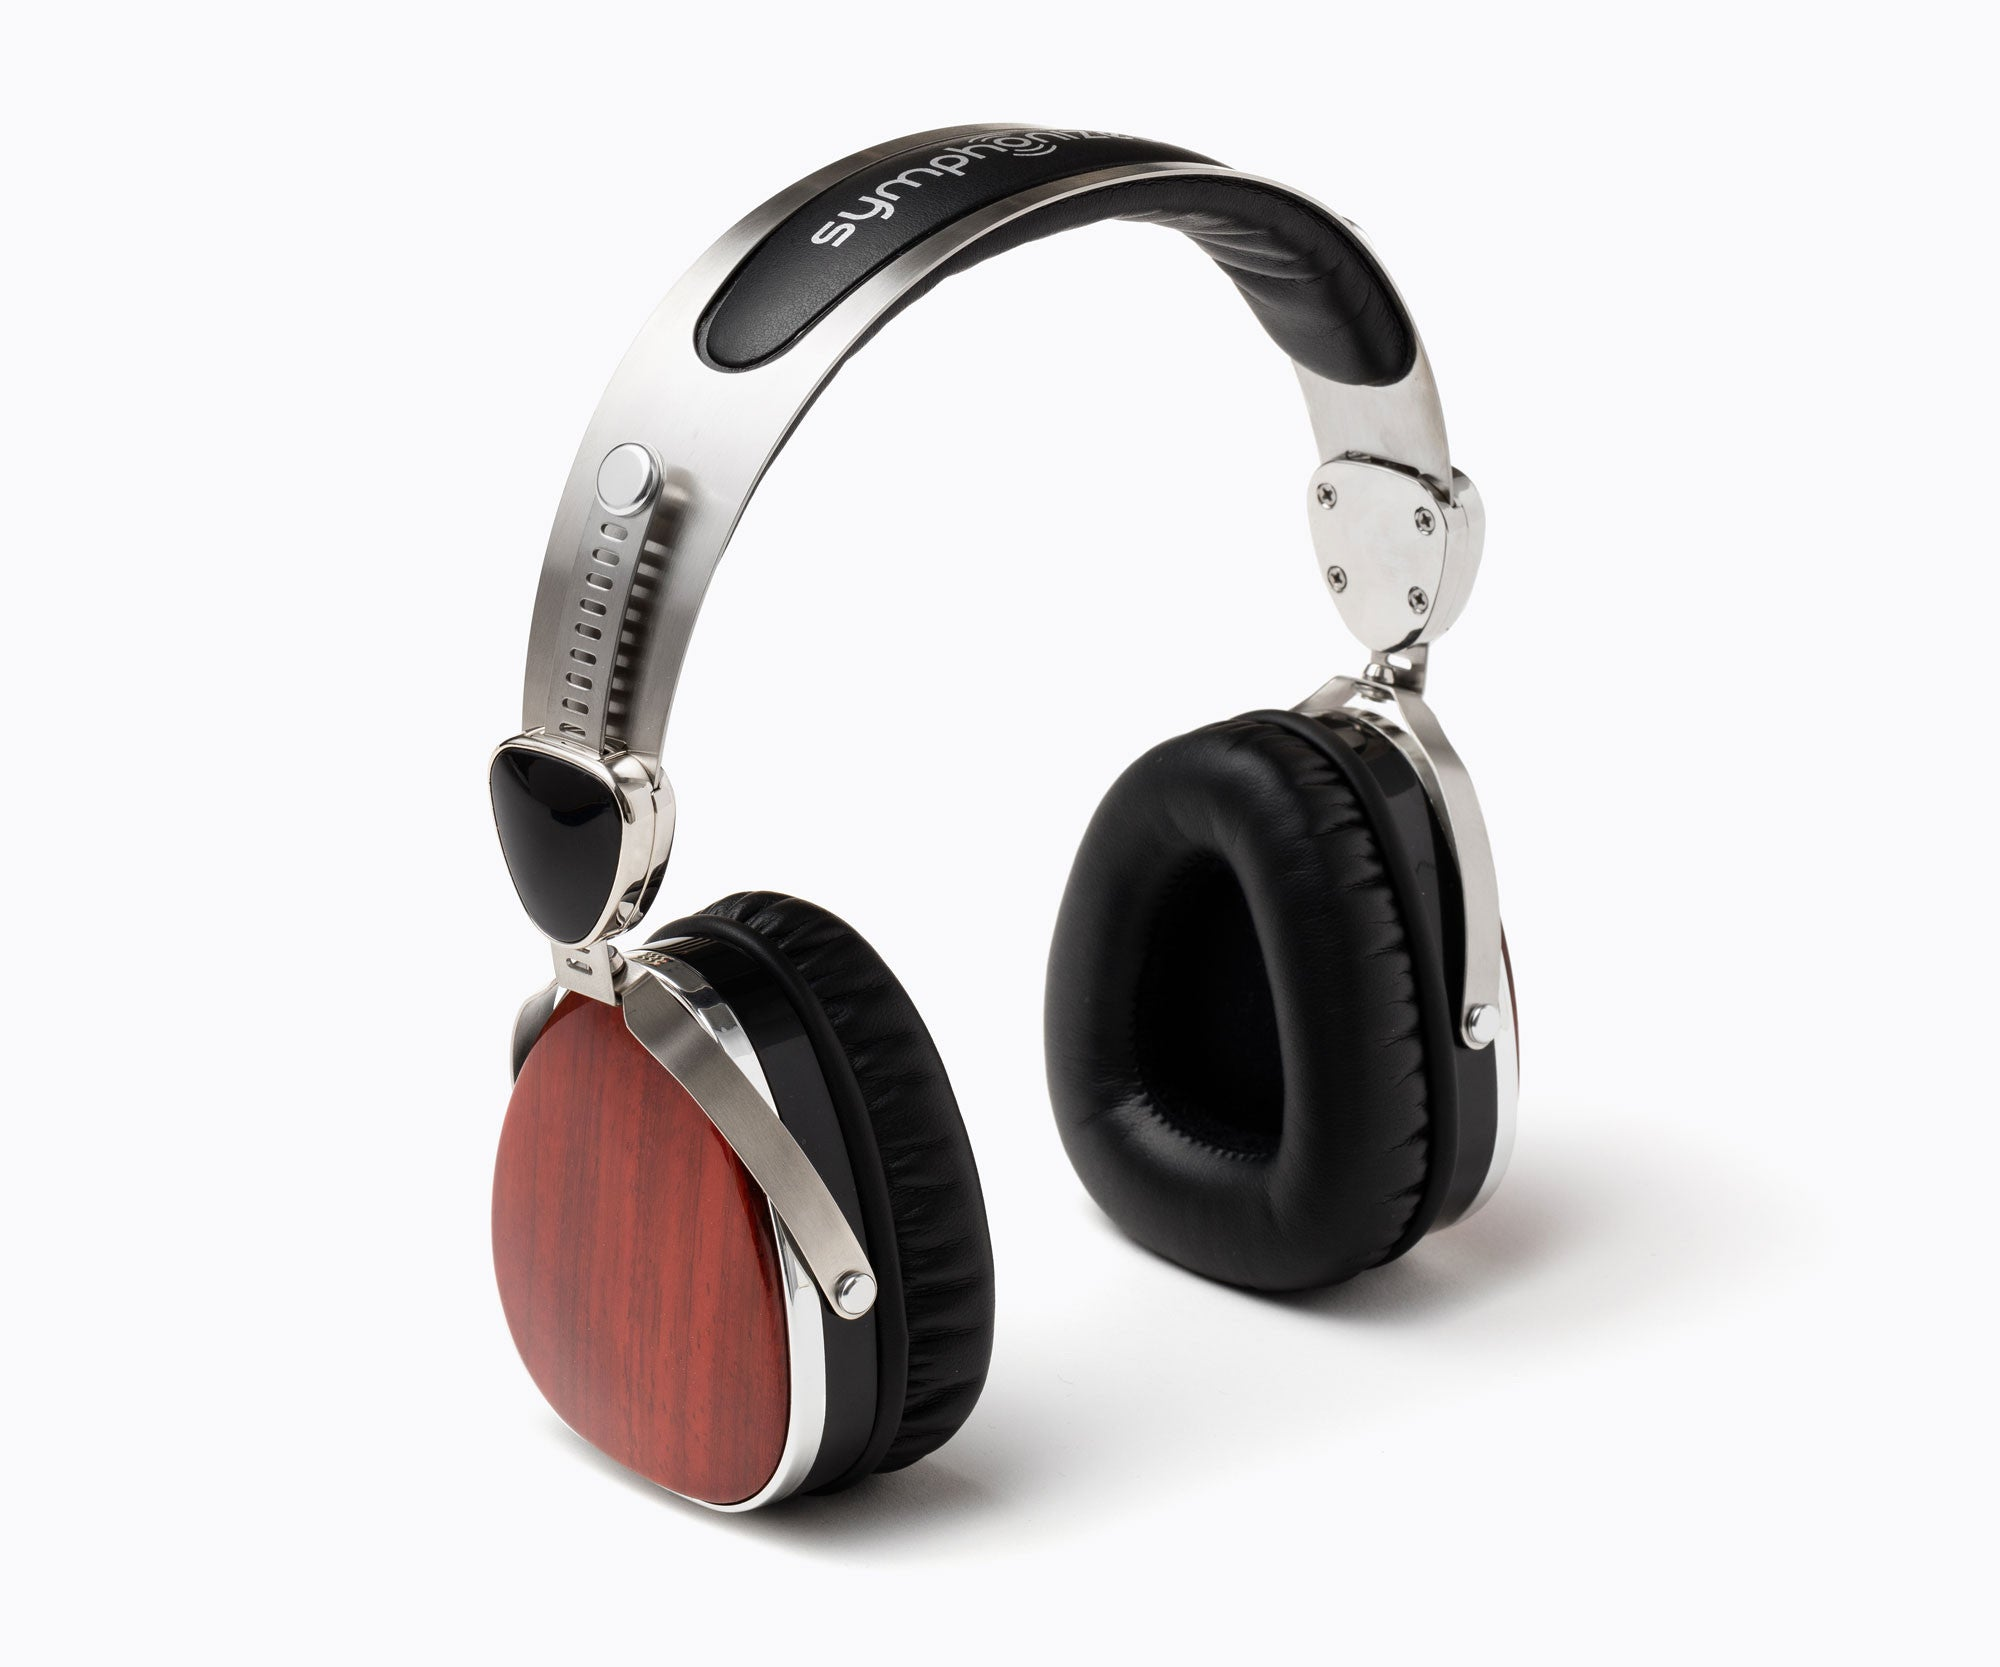 Wraith Cherry Headphones with Mic